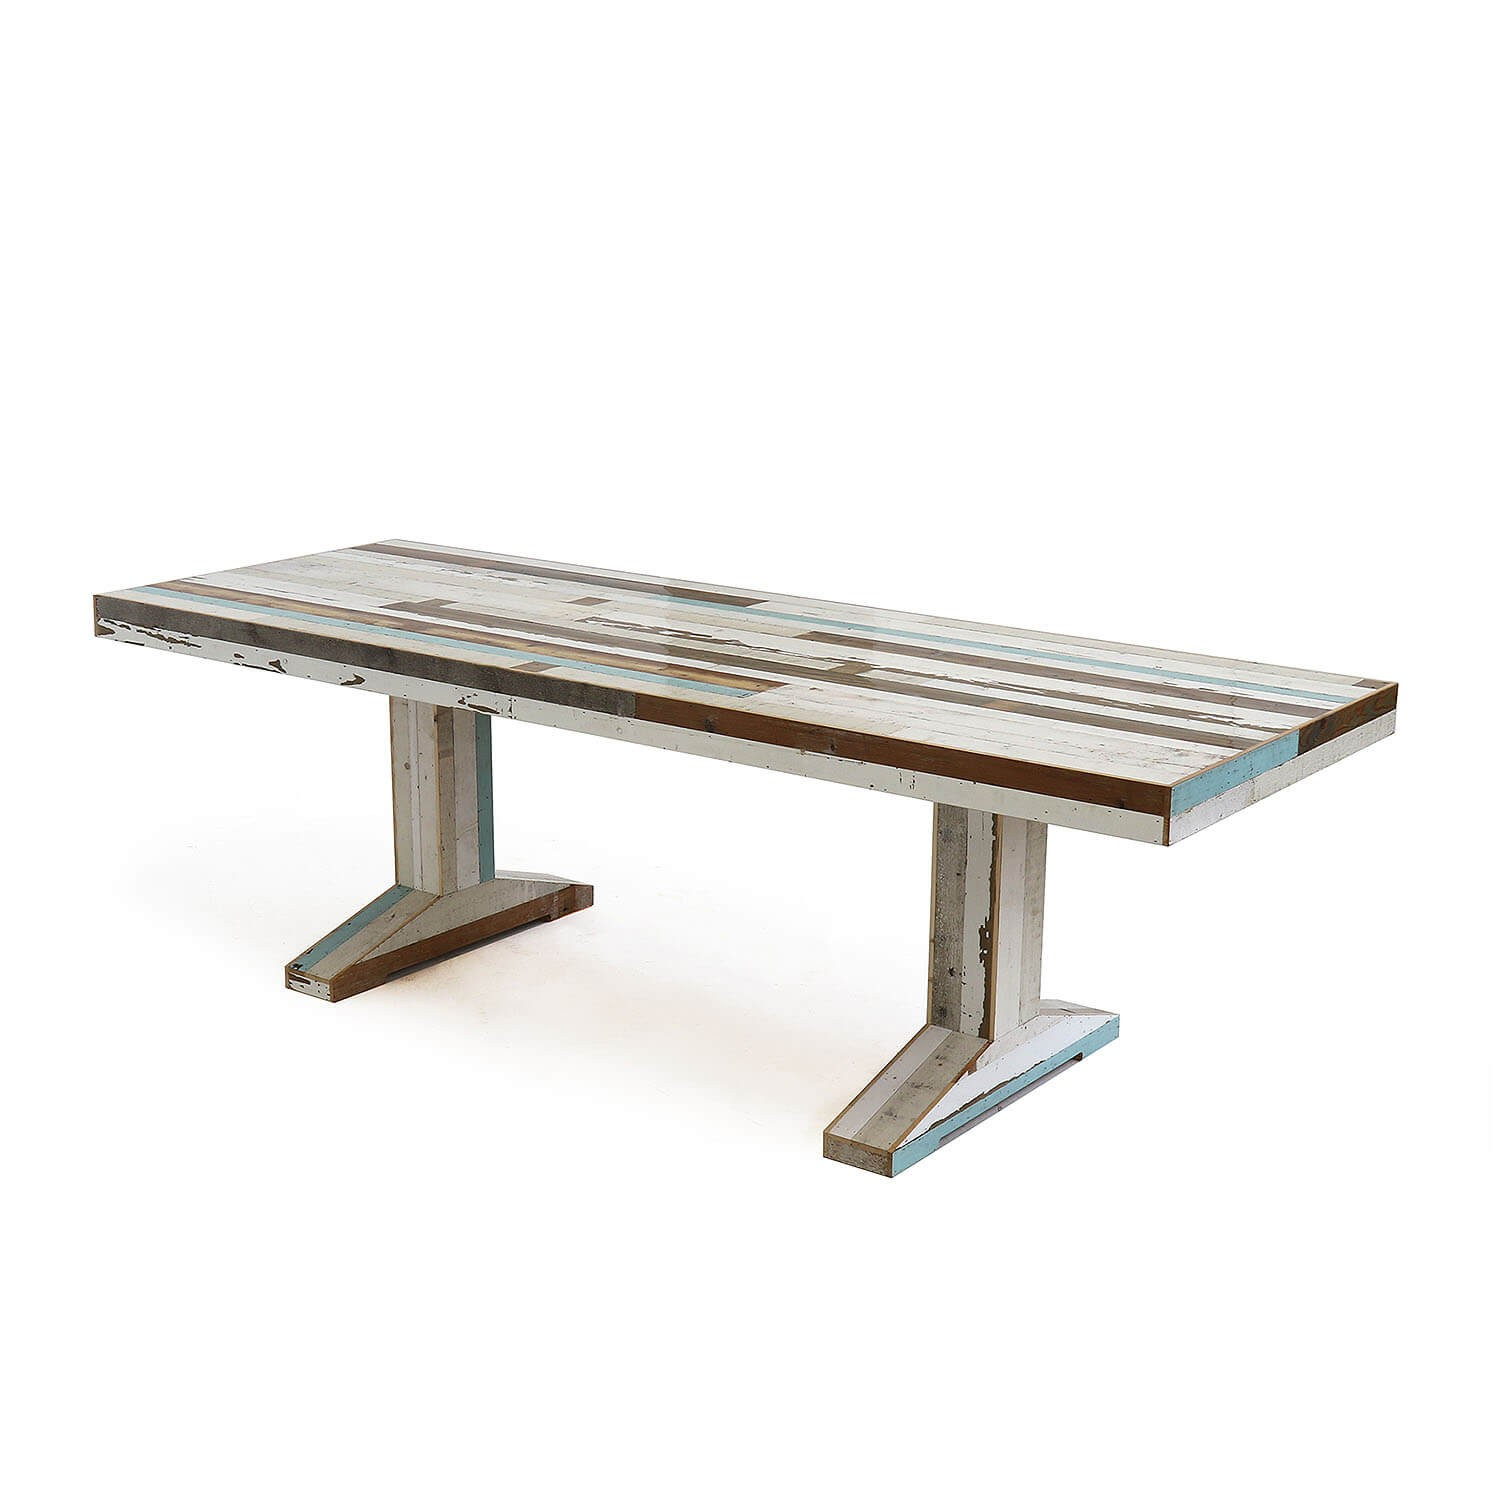 Wondrous Canteen Table In Scrapwood Kooku Ocoug Best Dining Table And Chair Ideas Images Ocougorg